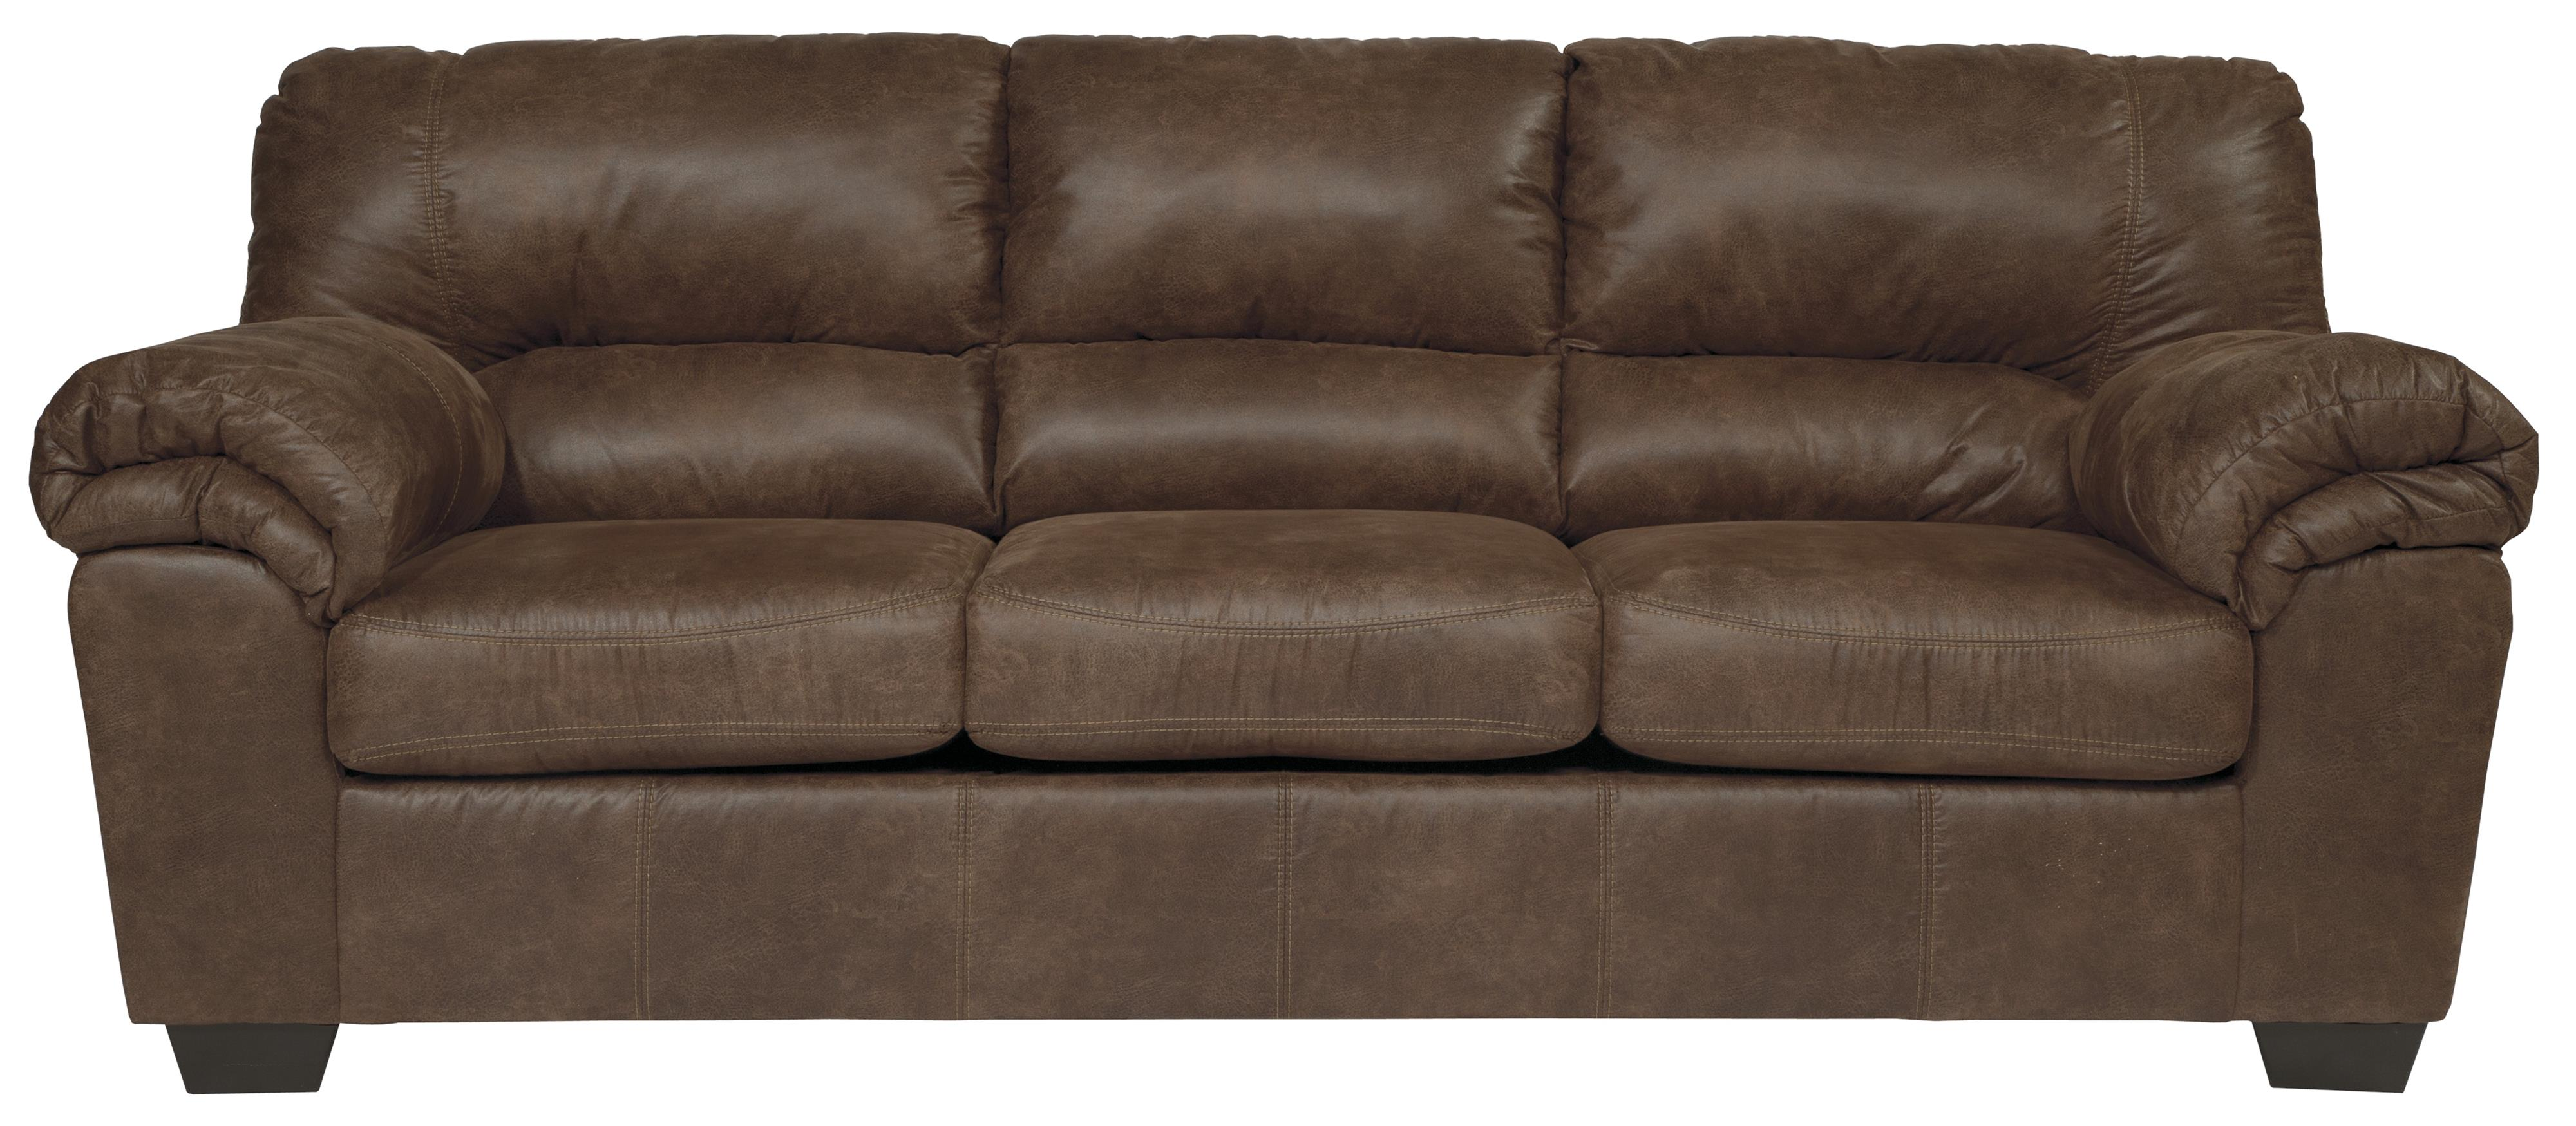 Sleeper Sofas Ashley Furniture